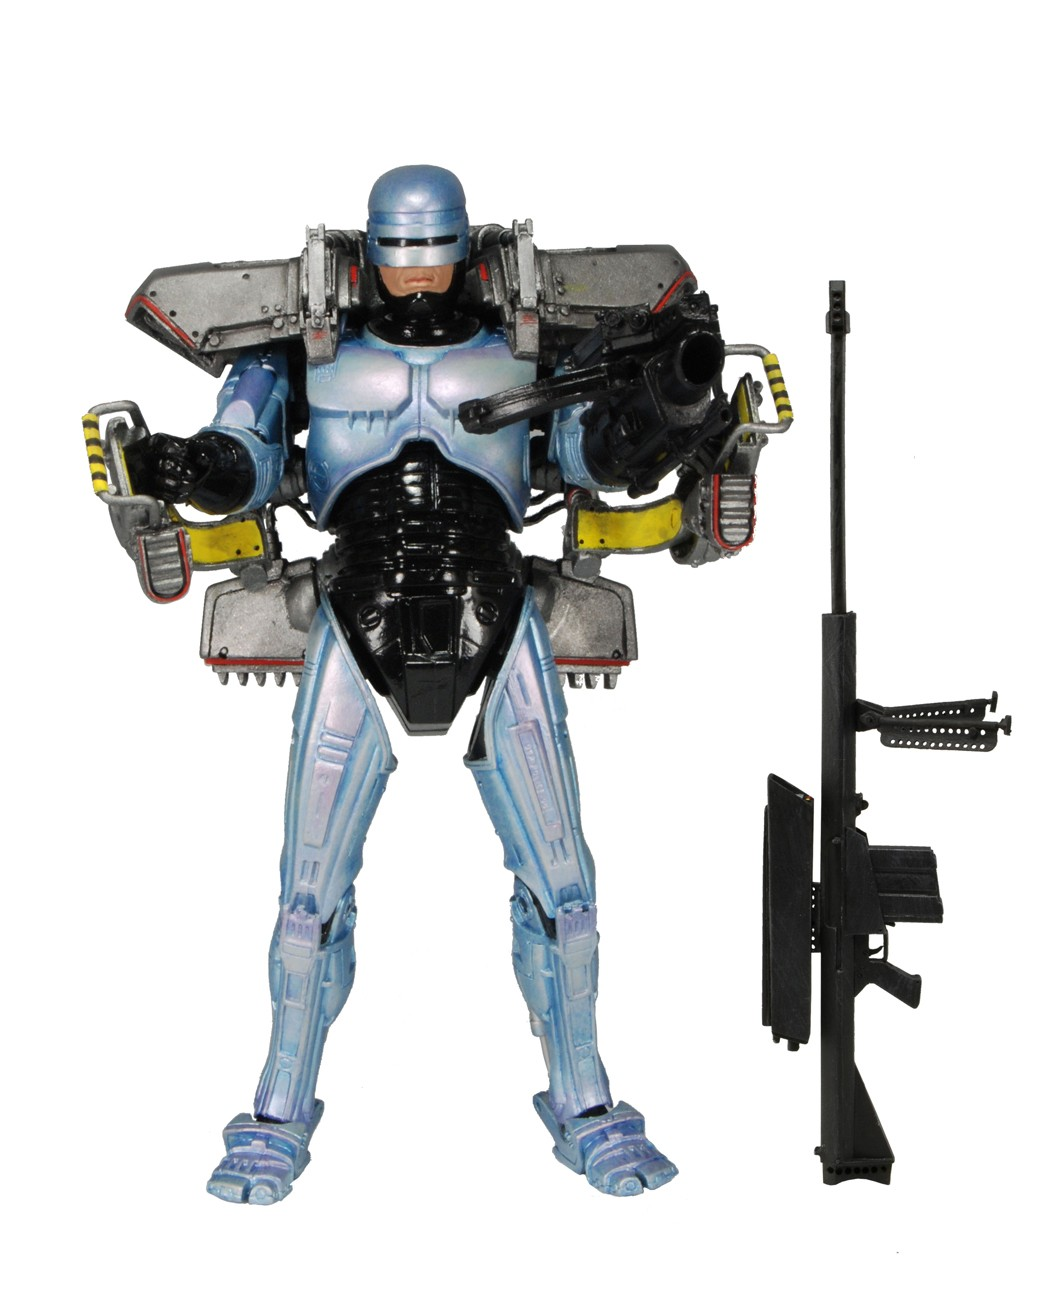 "NECA Robocop 3 - 7"" Scale Figure - Robocop with Jetpack & Cobra Assault Cannon"